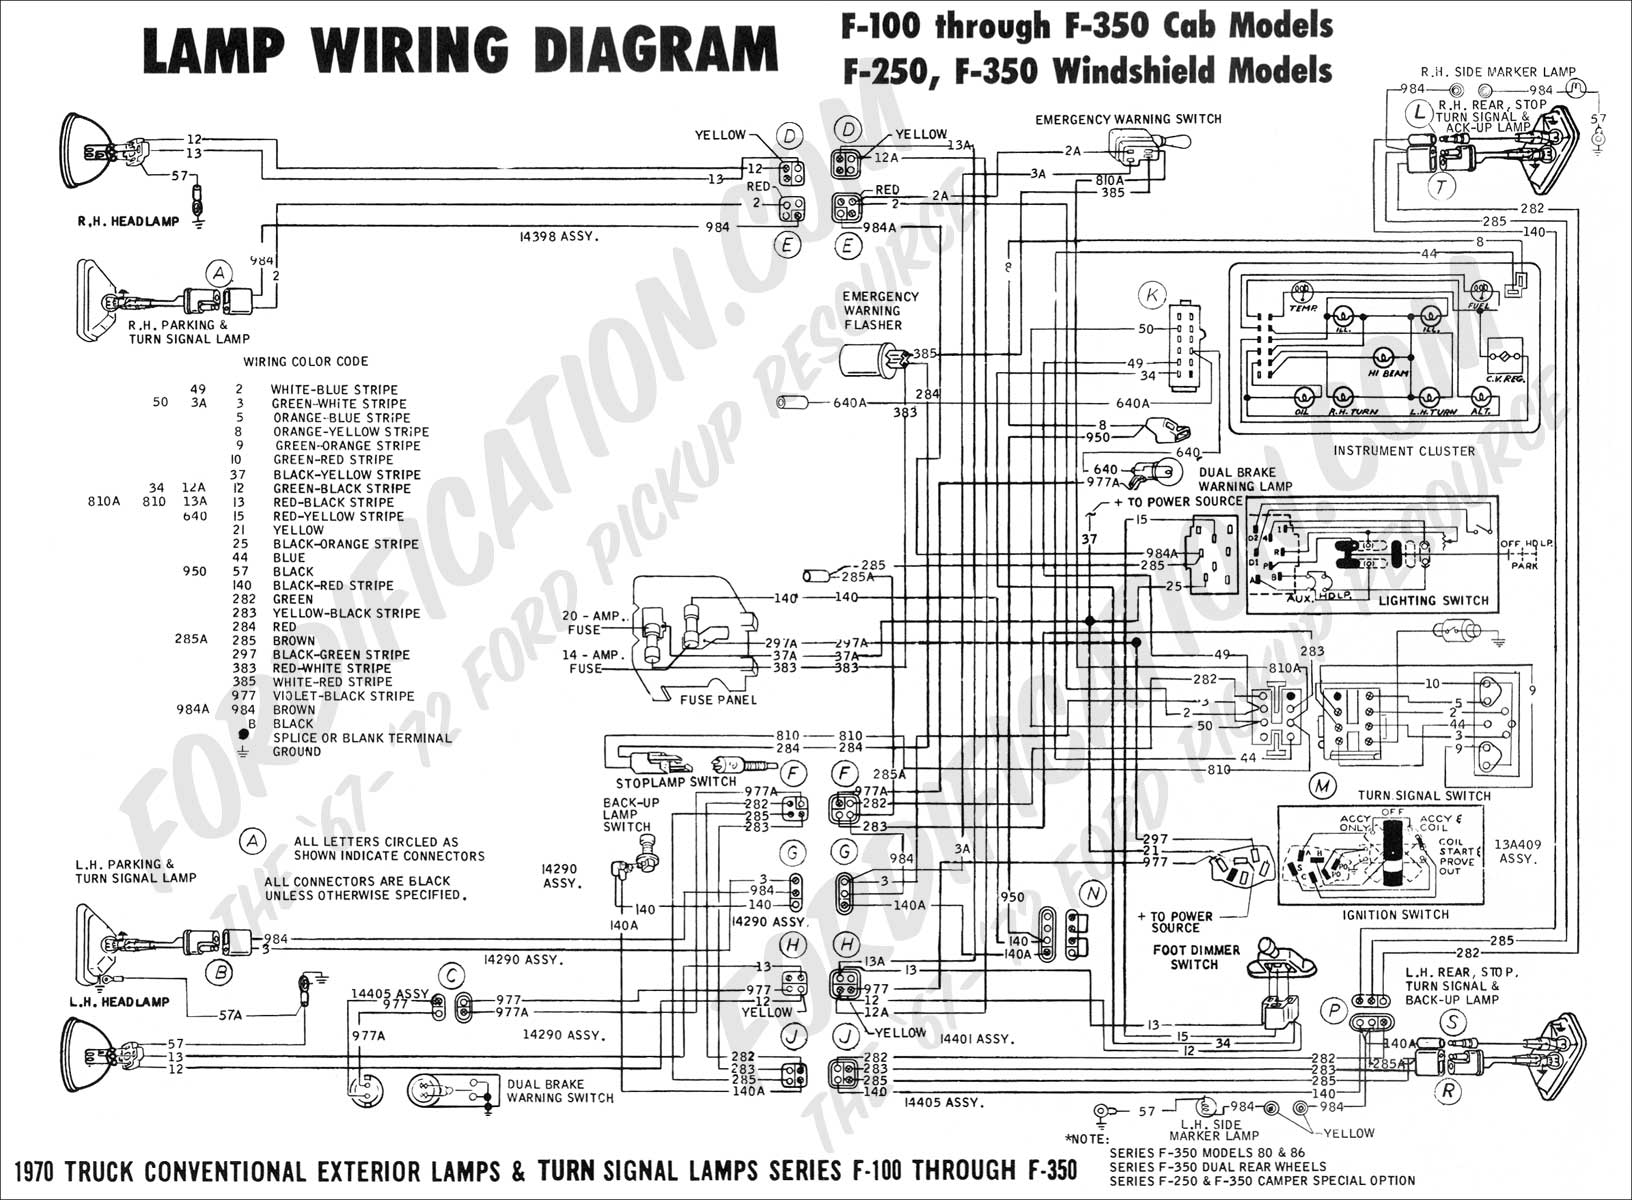 wiring diagram_70ext lights01 1993 ford f250 wiring diagram 1993 ford f 250 engine \u2022 free wiring 1984 ford f150 wiring harness at bakdesigns.co